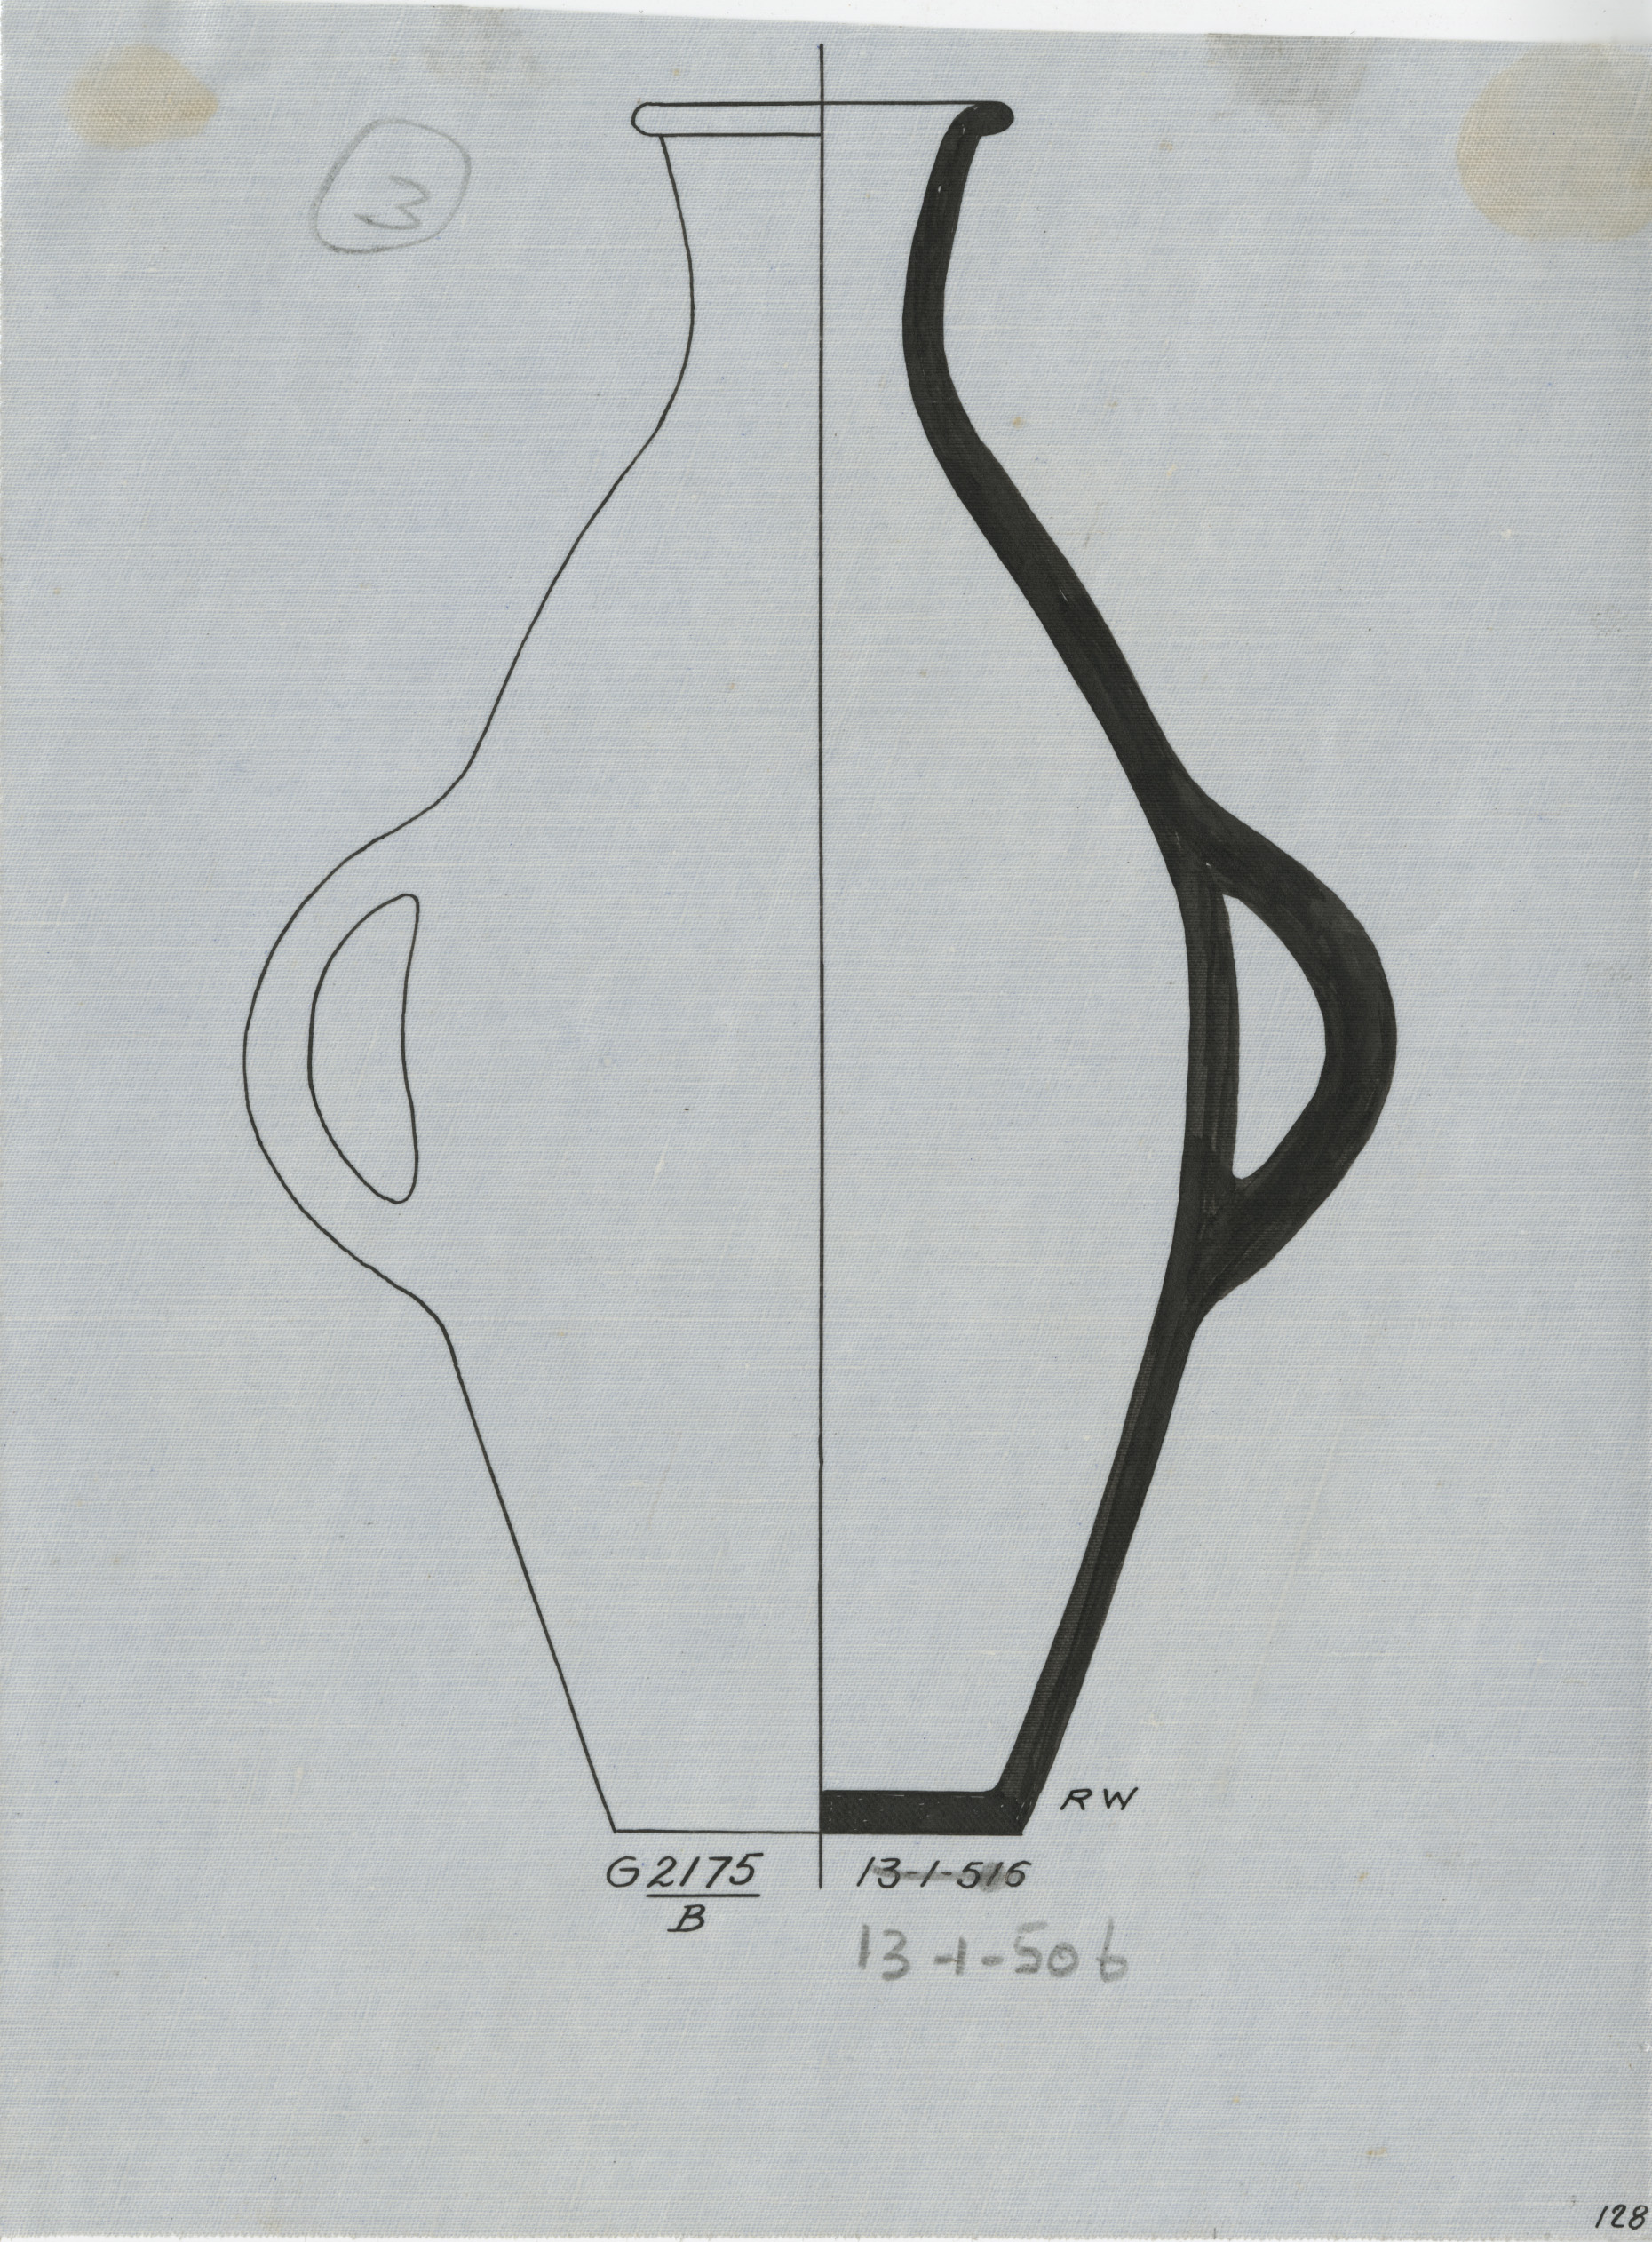 Drawings: G 2175, Shaft B: pottery, jar with two handles